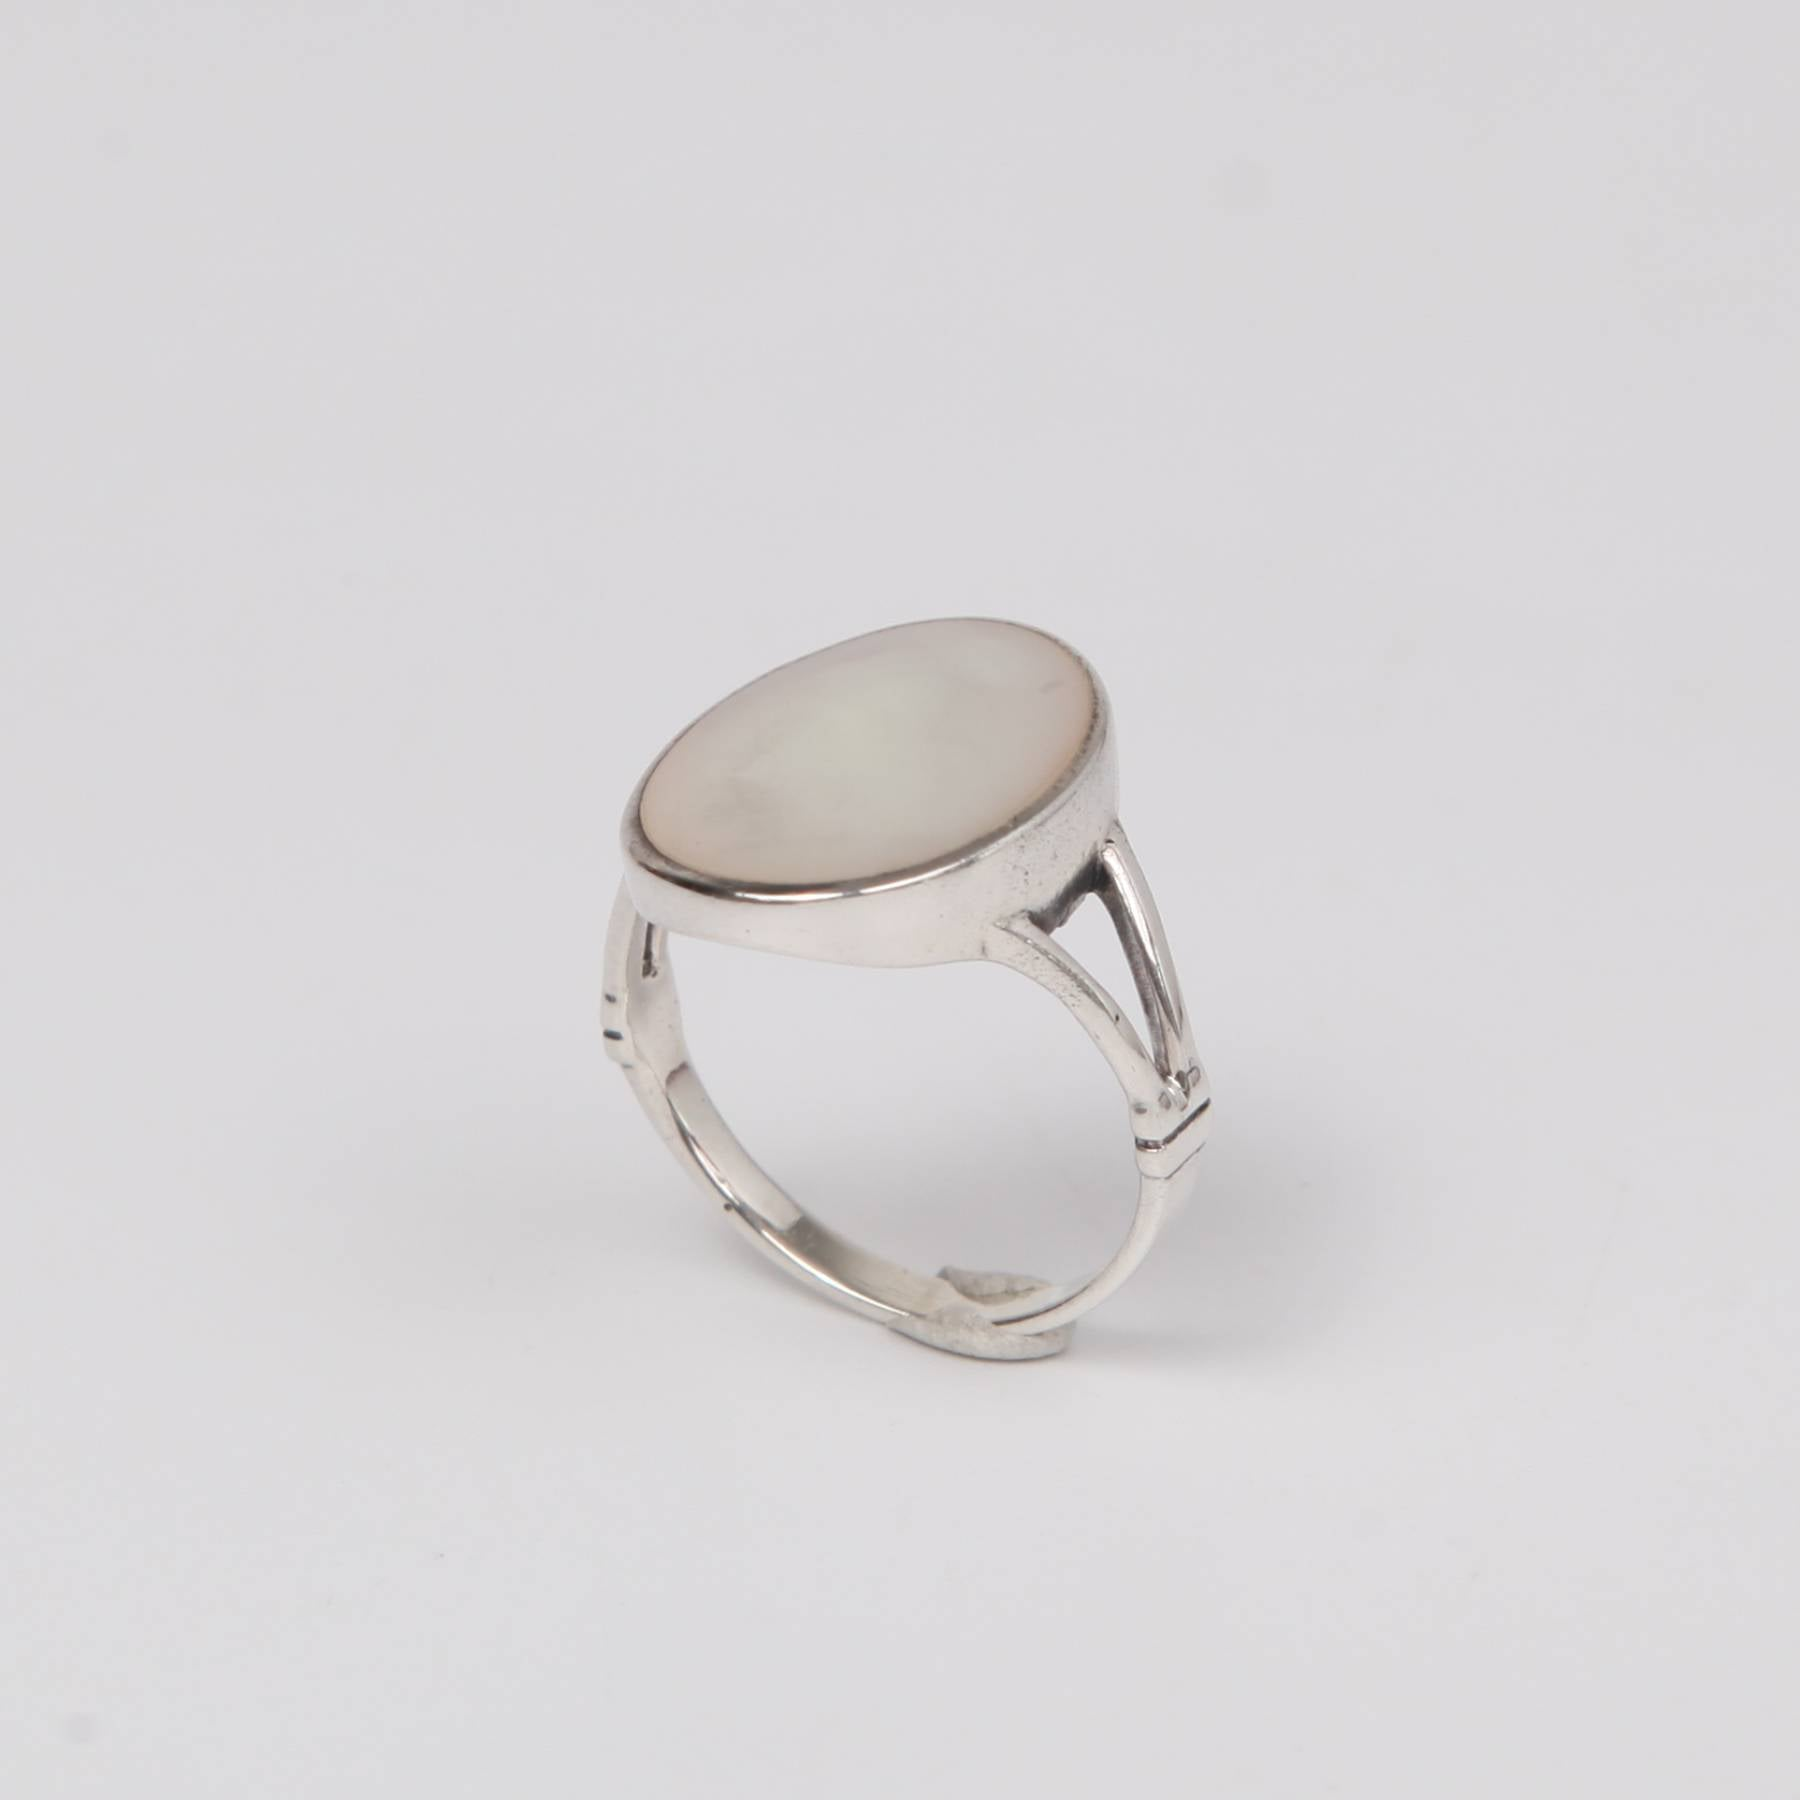 Circular Sterling Silver Ring with Mother of Pearl